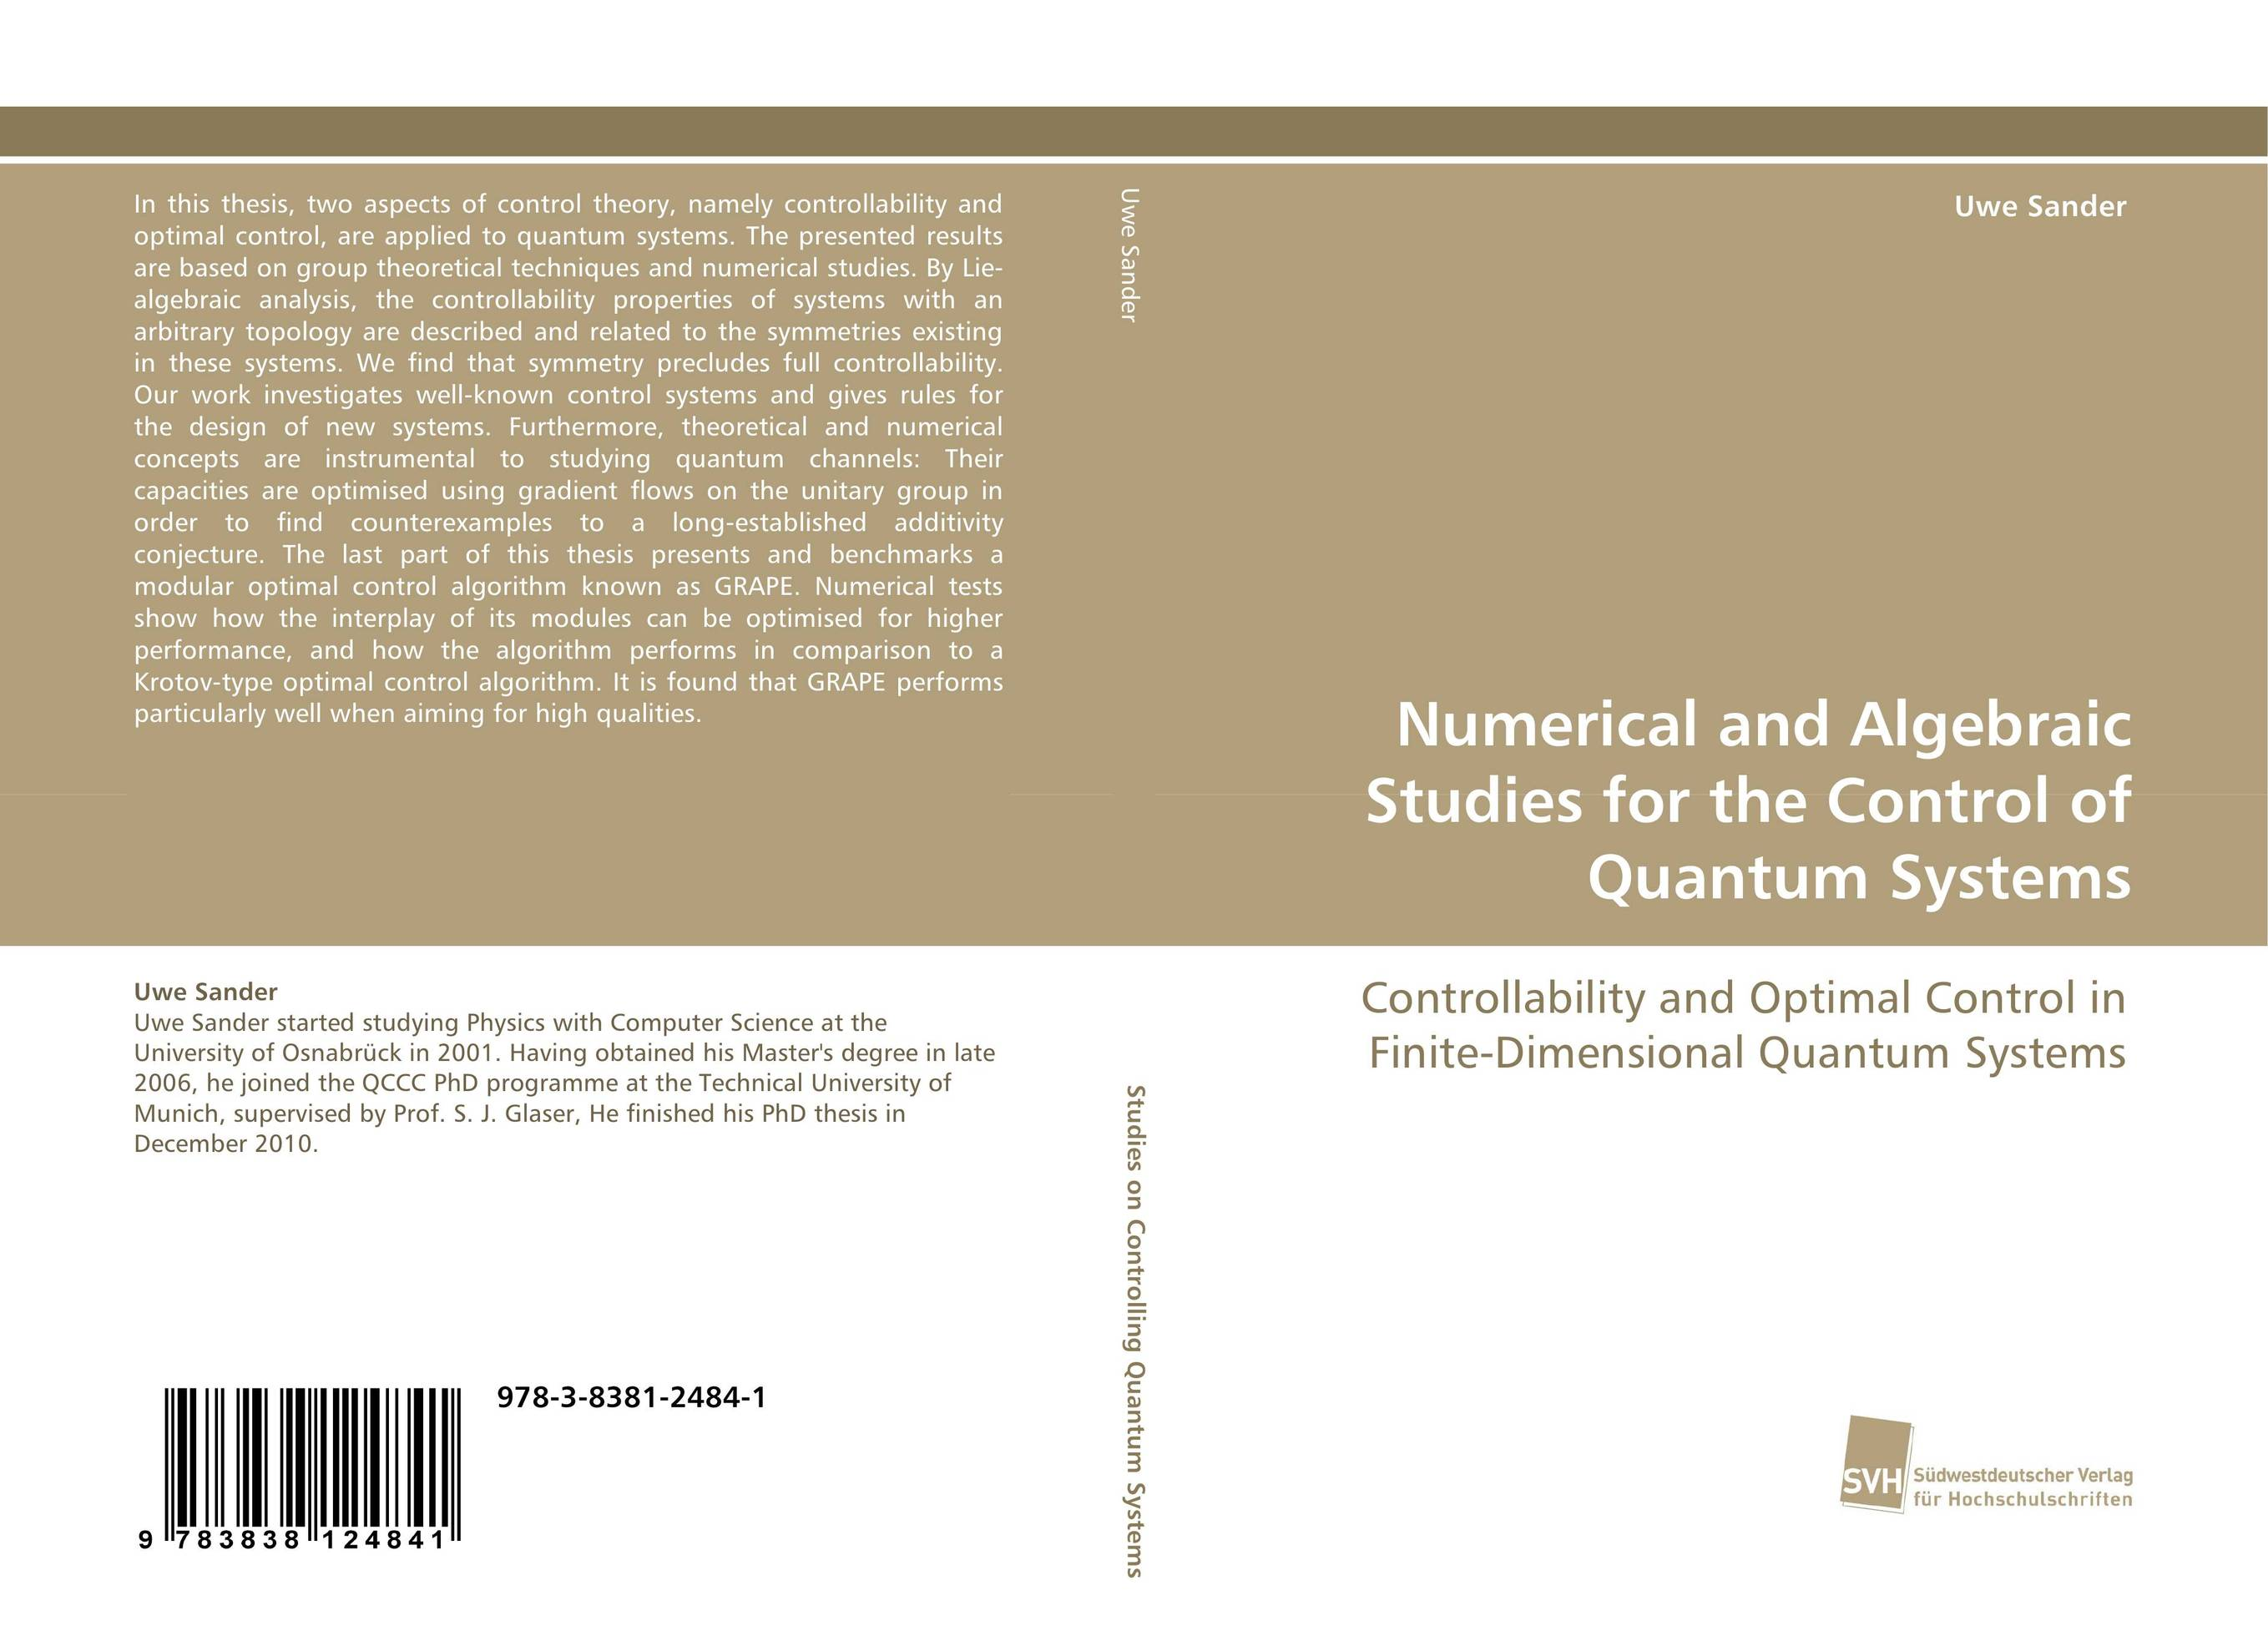 Numerical and Algebraic Studies for the Control of Quantum Systems numerical methods for linear control systems